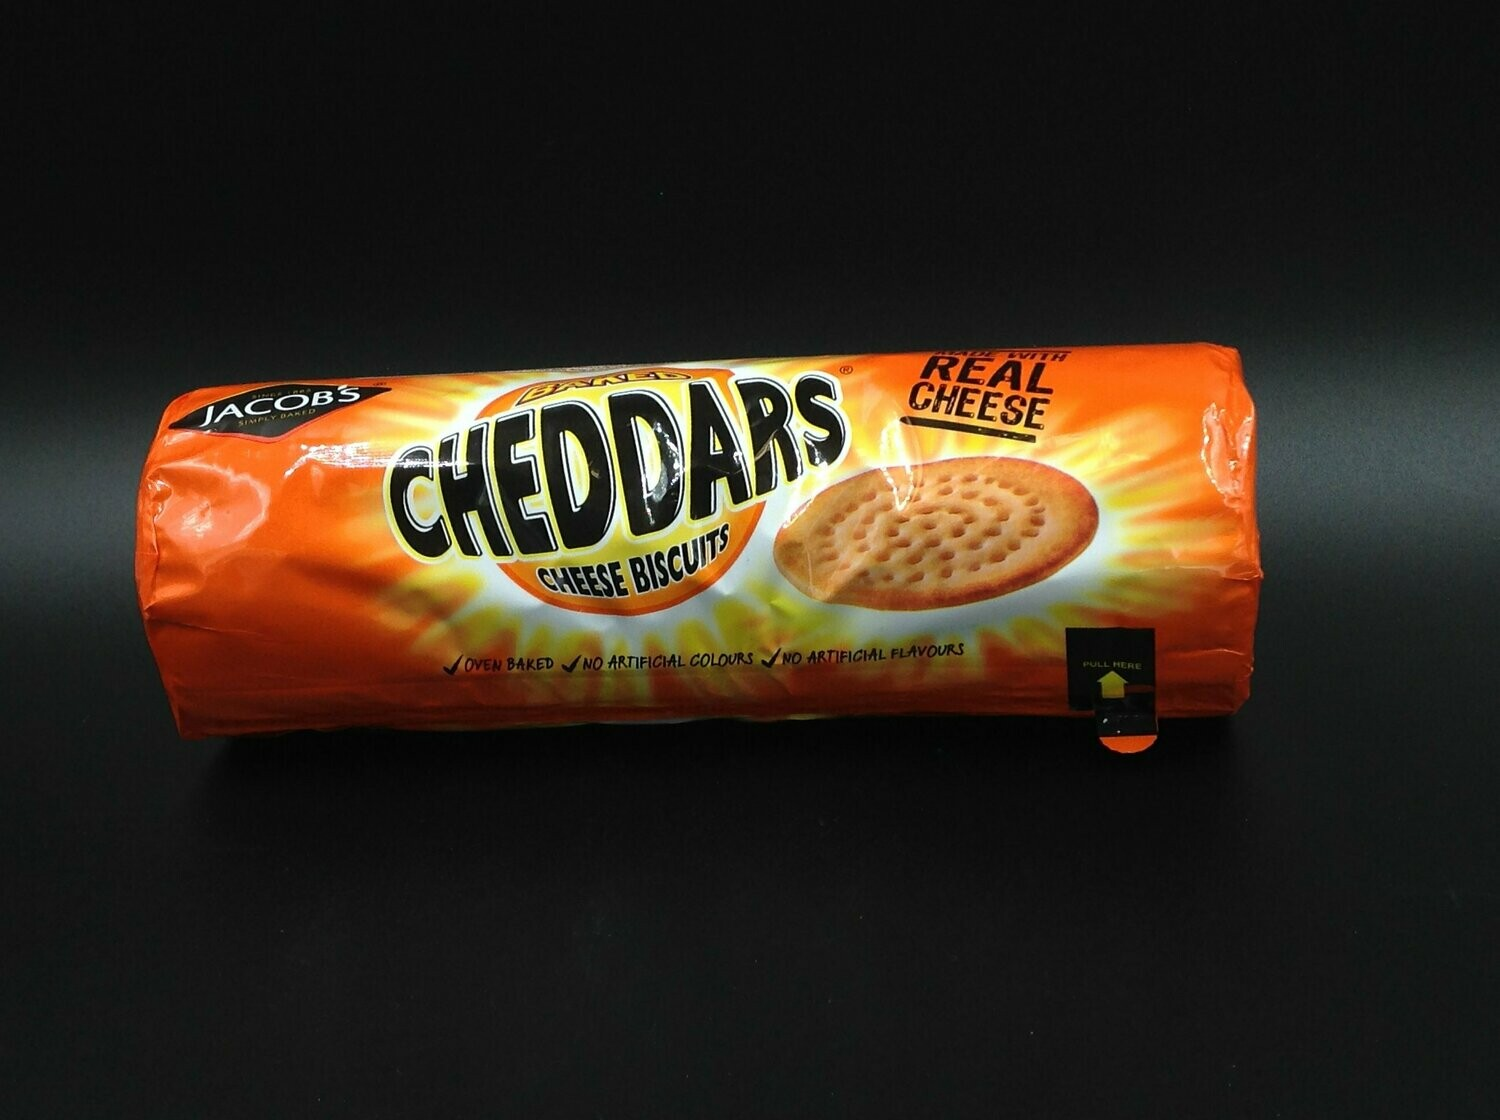 Jacob's Cheddars Cheese Biscuits 150g